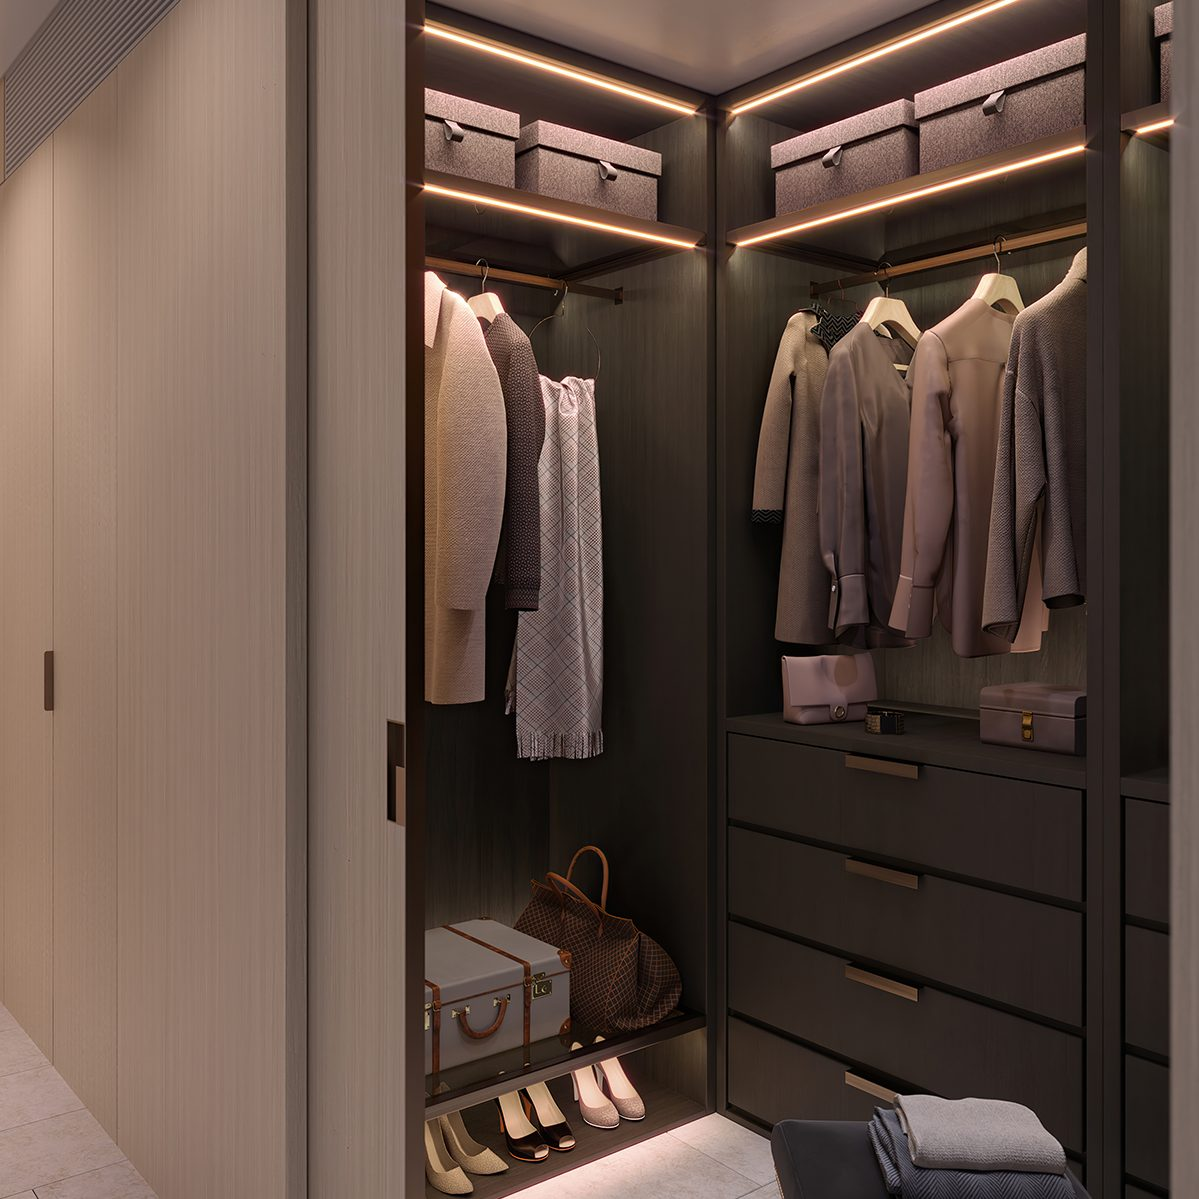 RICHMOND ROSE INT CGI Wardrobe R2 Tif